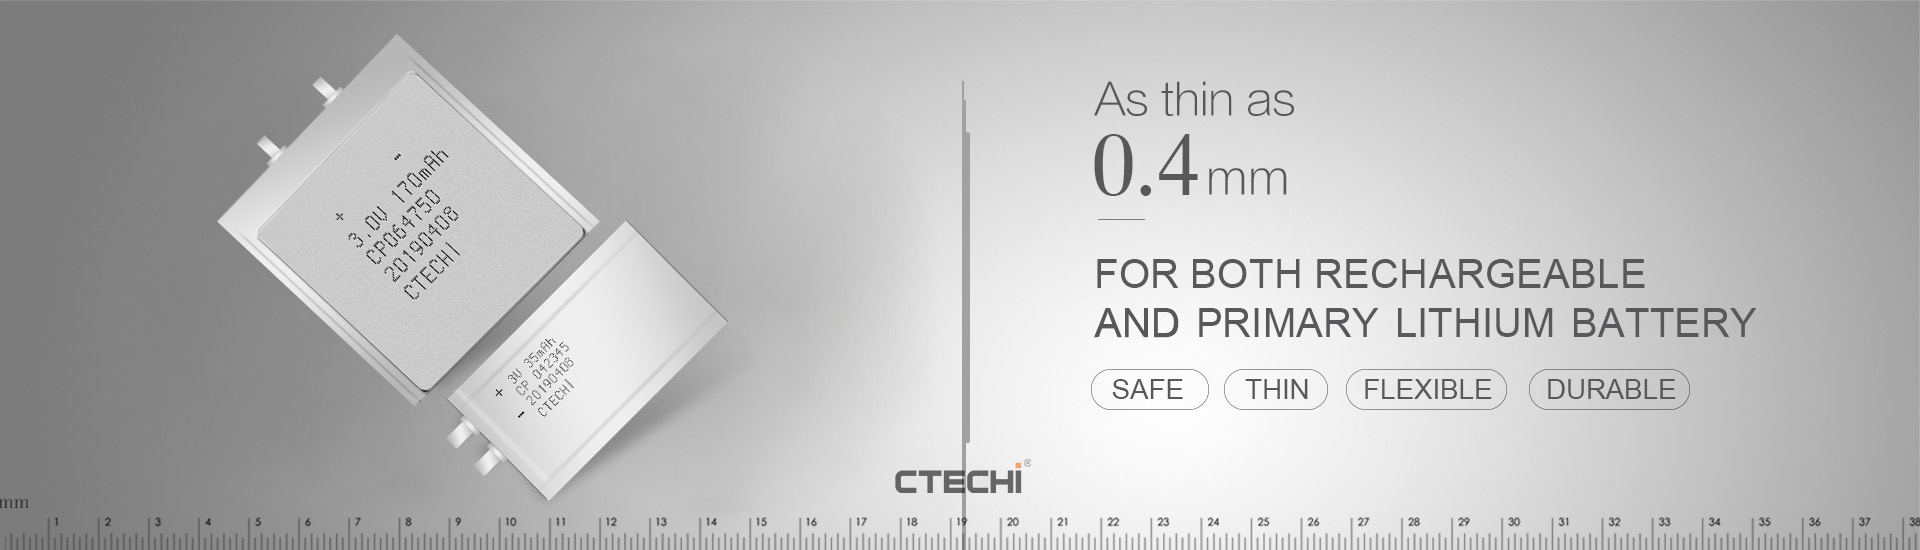 CTECHi practical micro-thin battery series for manufacture-1